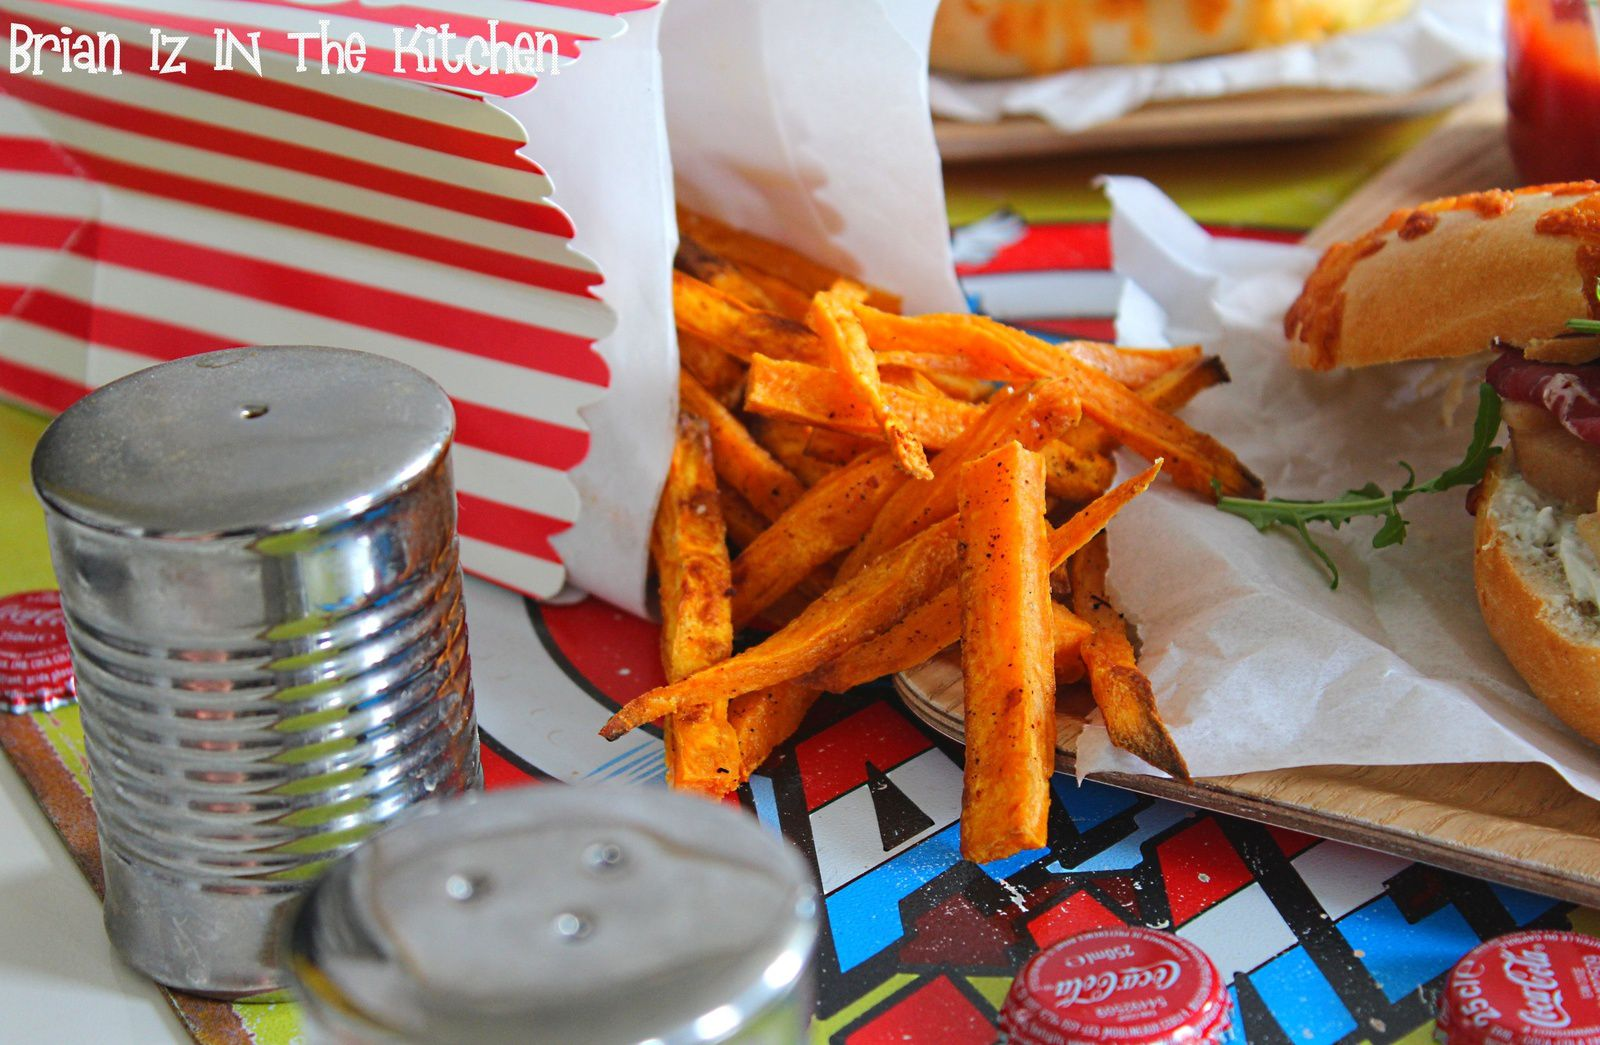 Frites de patates douces au paprika cuites au four brian iz in the kitchen - Frite friteuse au four ...